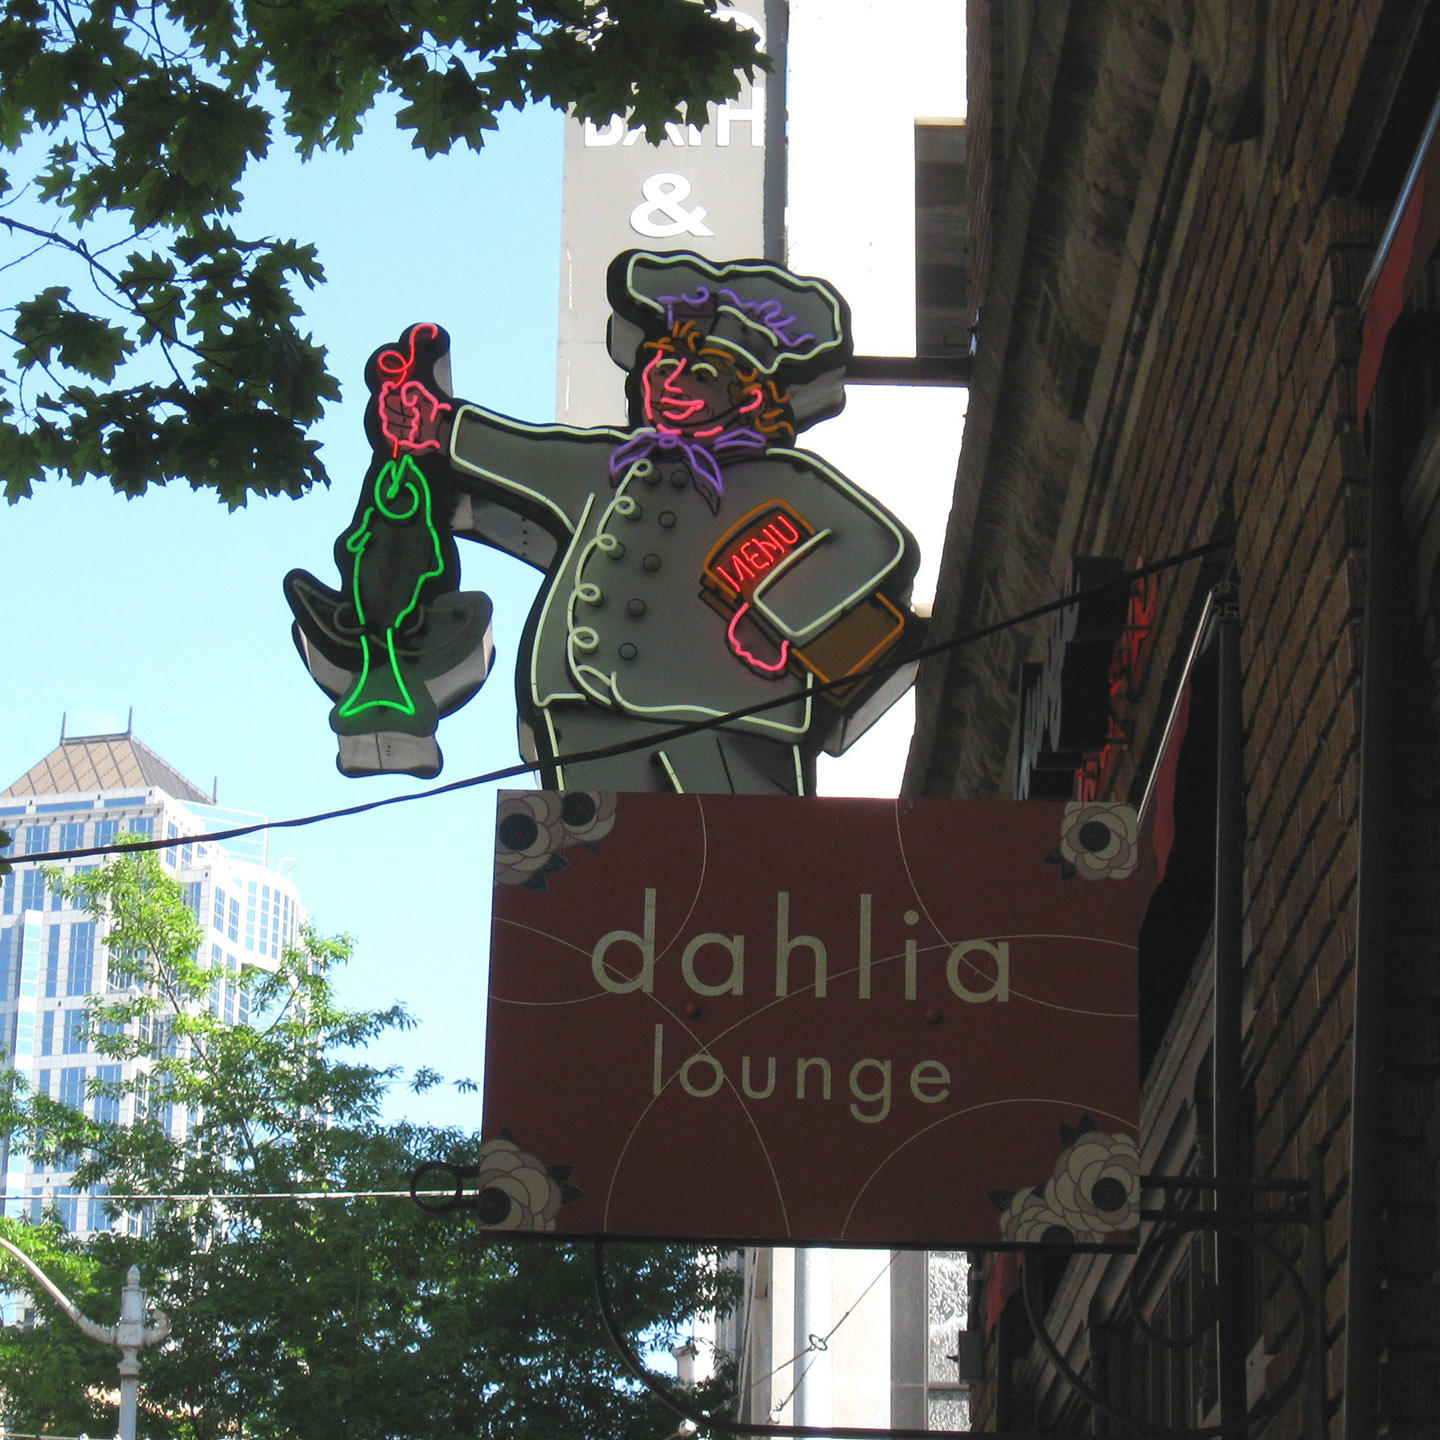 Dahlia Lounge in Seattle 4th Avenue